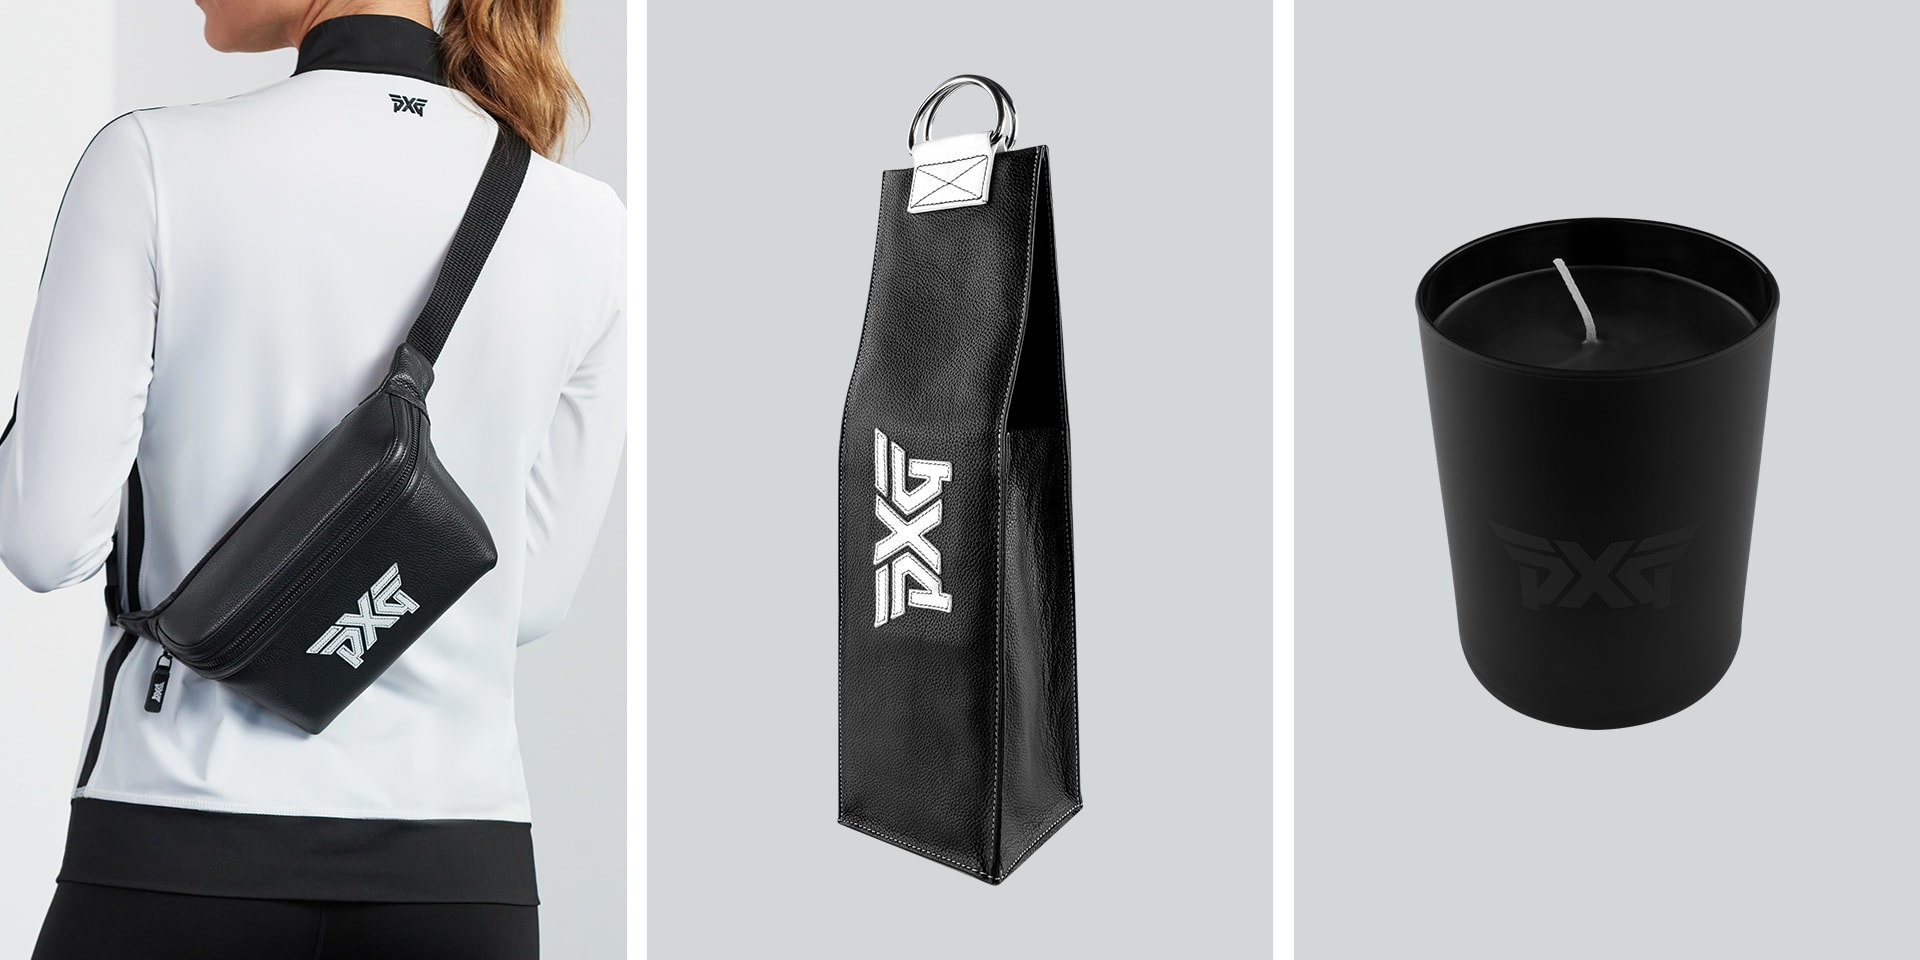 PXG Fanny pack worn by a female model, a PXG Wine Tote and PXG Candle.